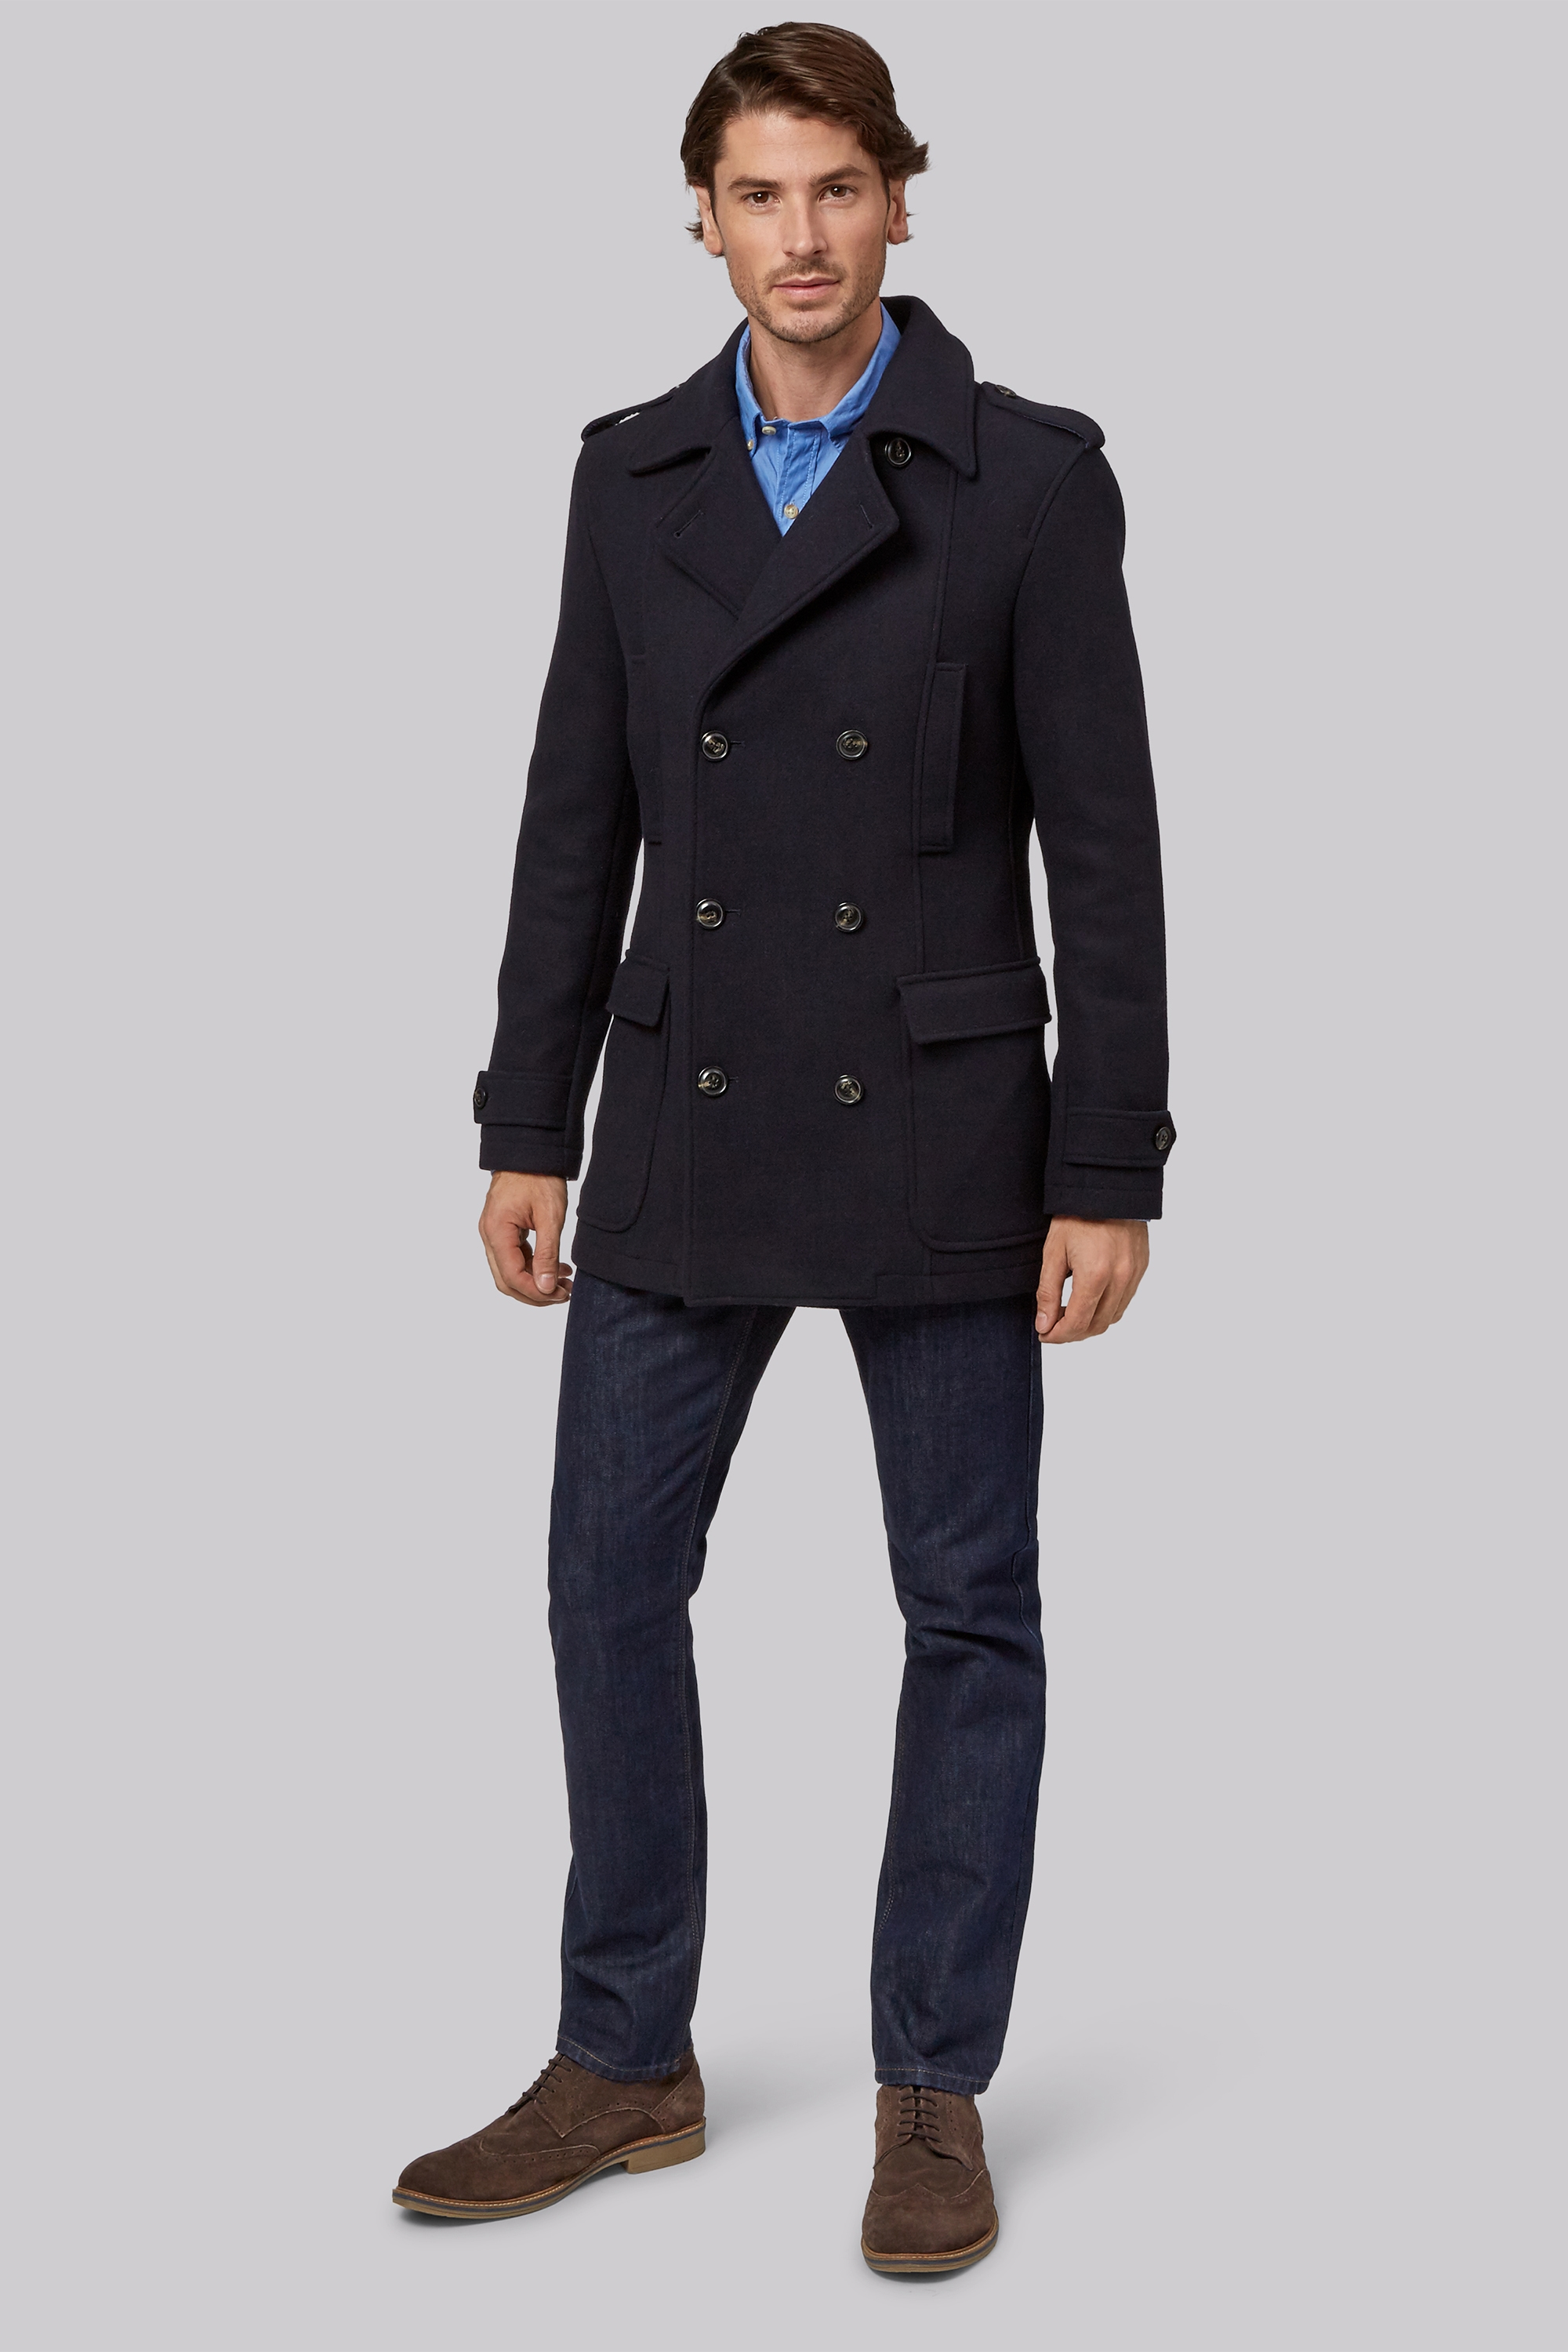 Shop a great selection of Men's Wool Coats & Peacoats at Nordstrom Rack. Find designer Men's Wool Coats & Peacoats up to 70% off .